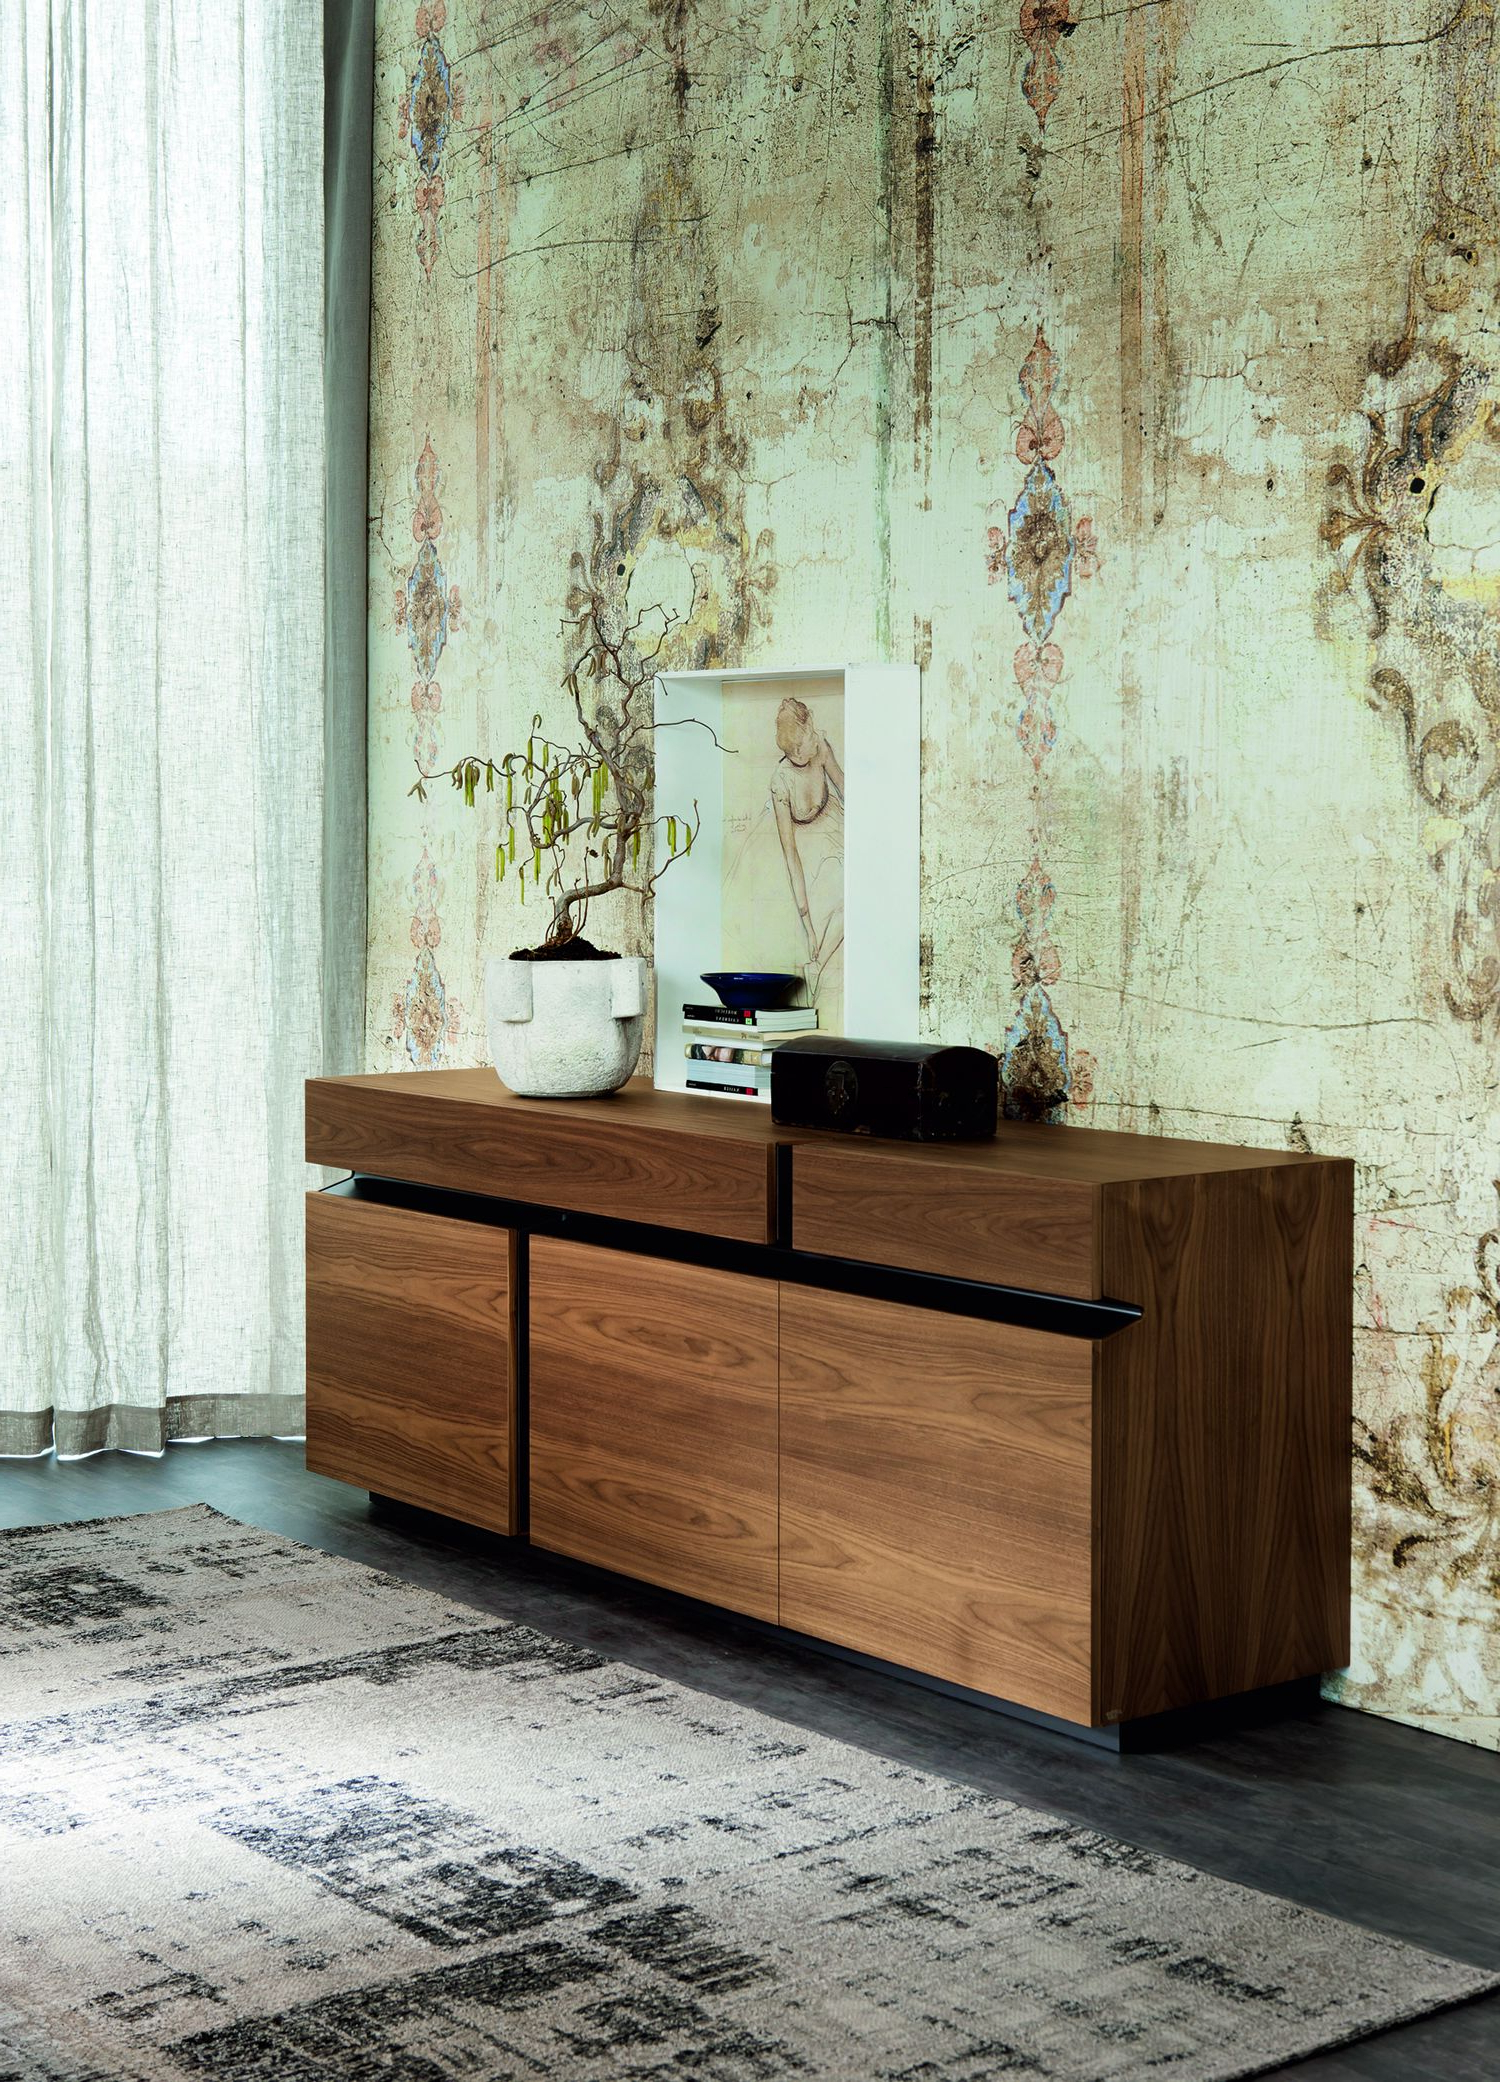 Prisma | Glass Shelves, Drawers And Shelves Inside Burnt Oak Metal Sideboards (View 11 of 20)